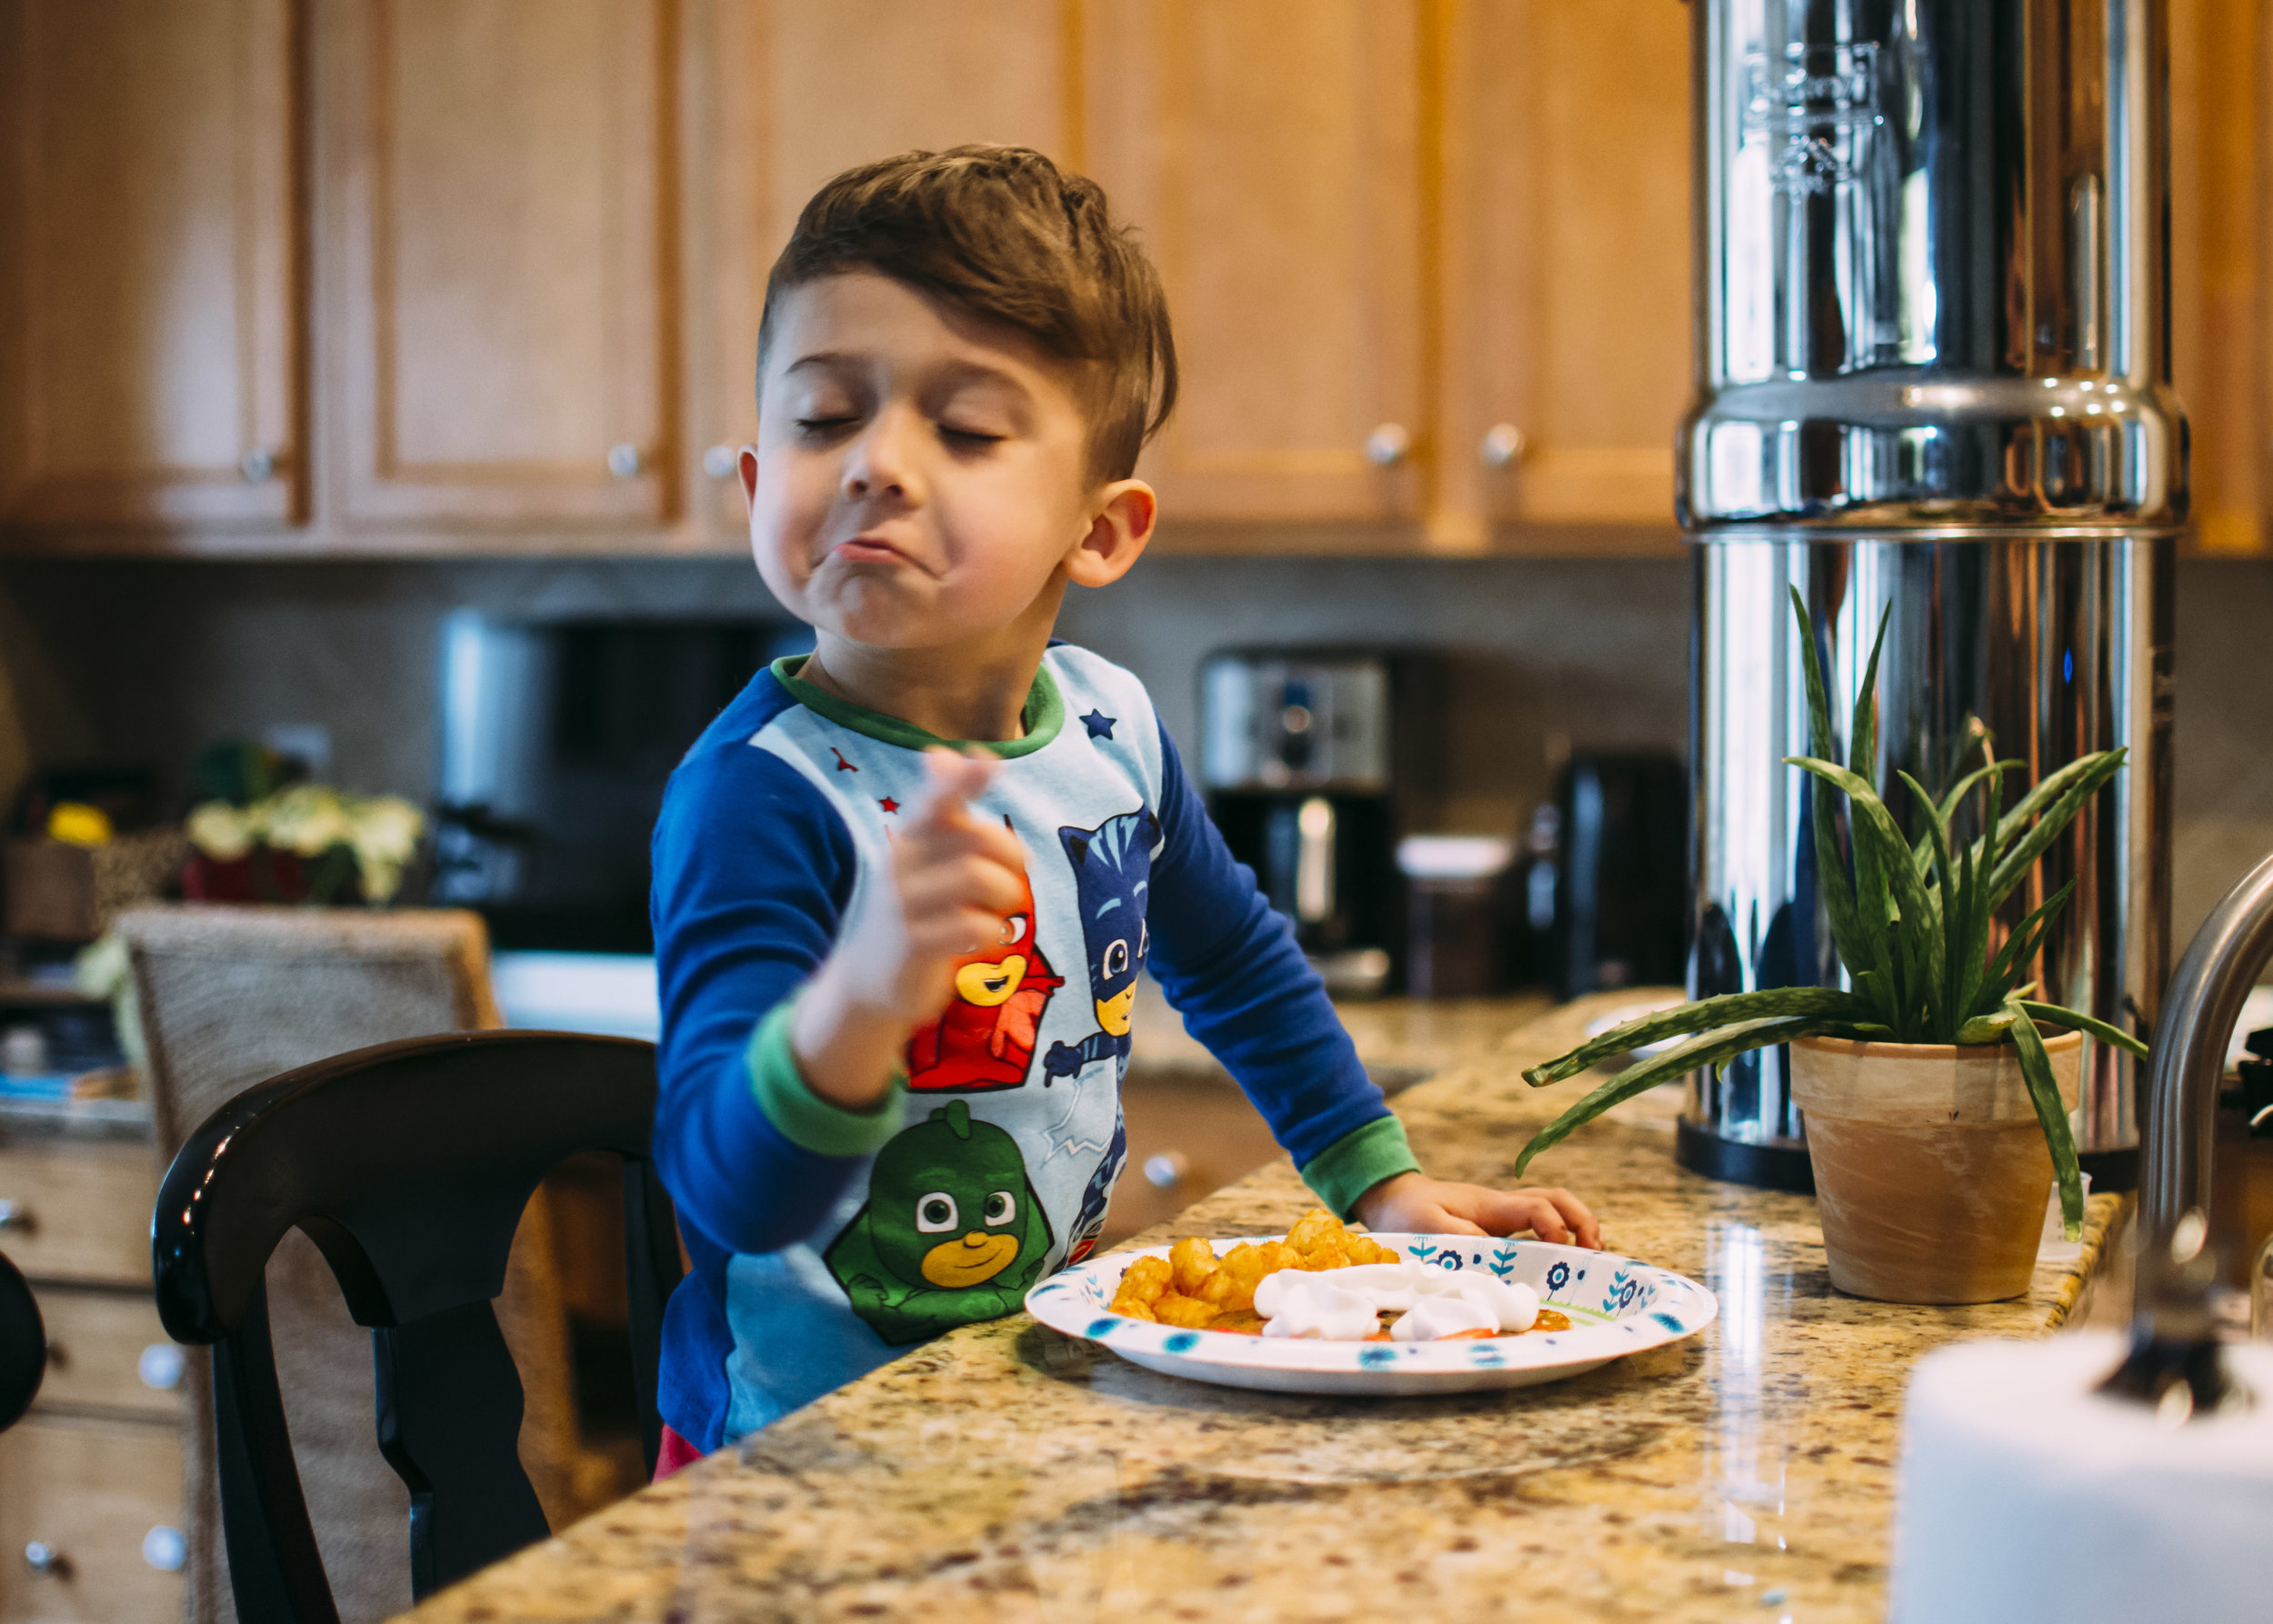 fort mill, sc family photographer  confetti pancakes, breakfast  silly kid